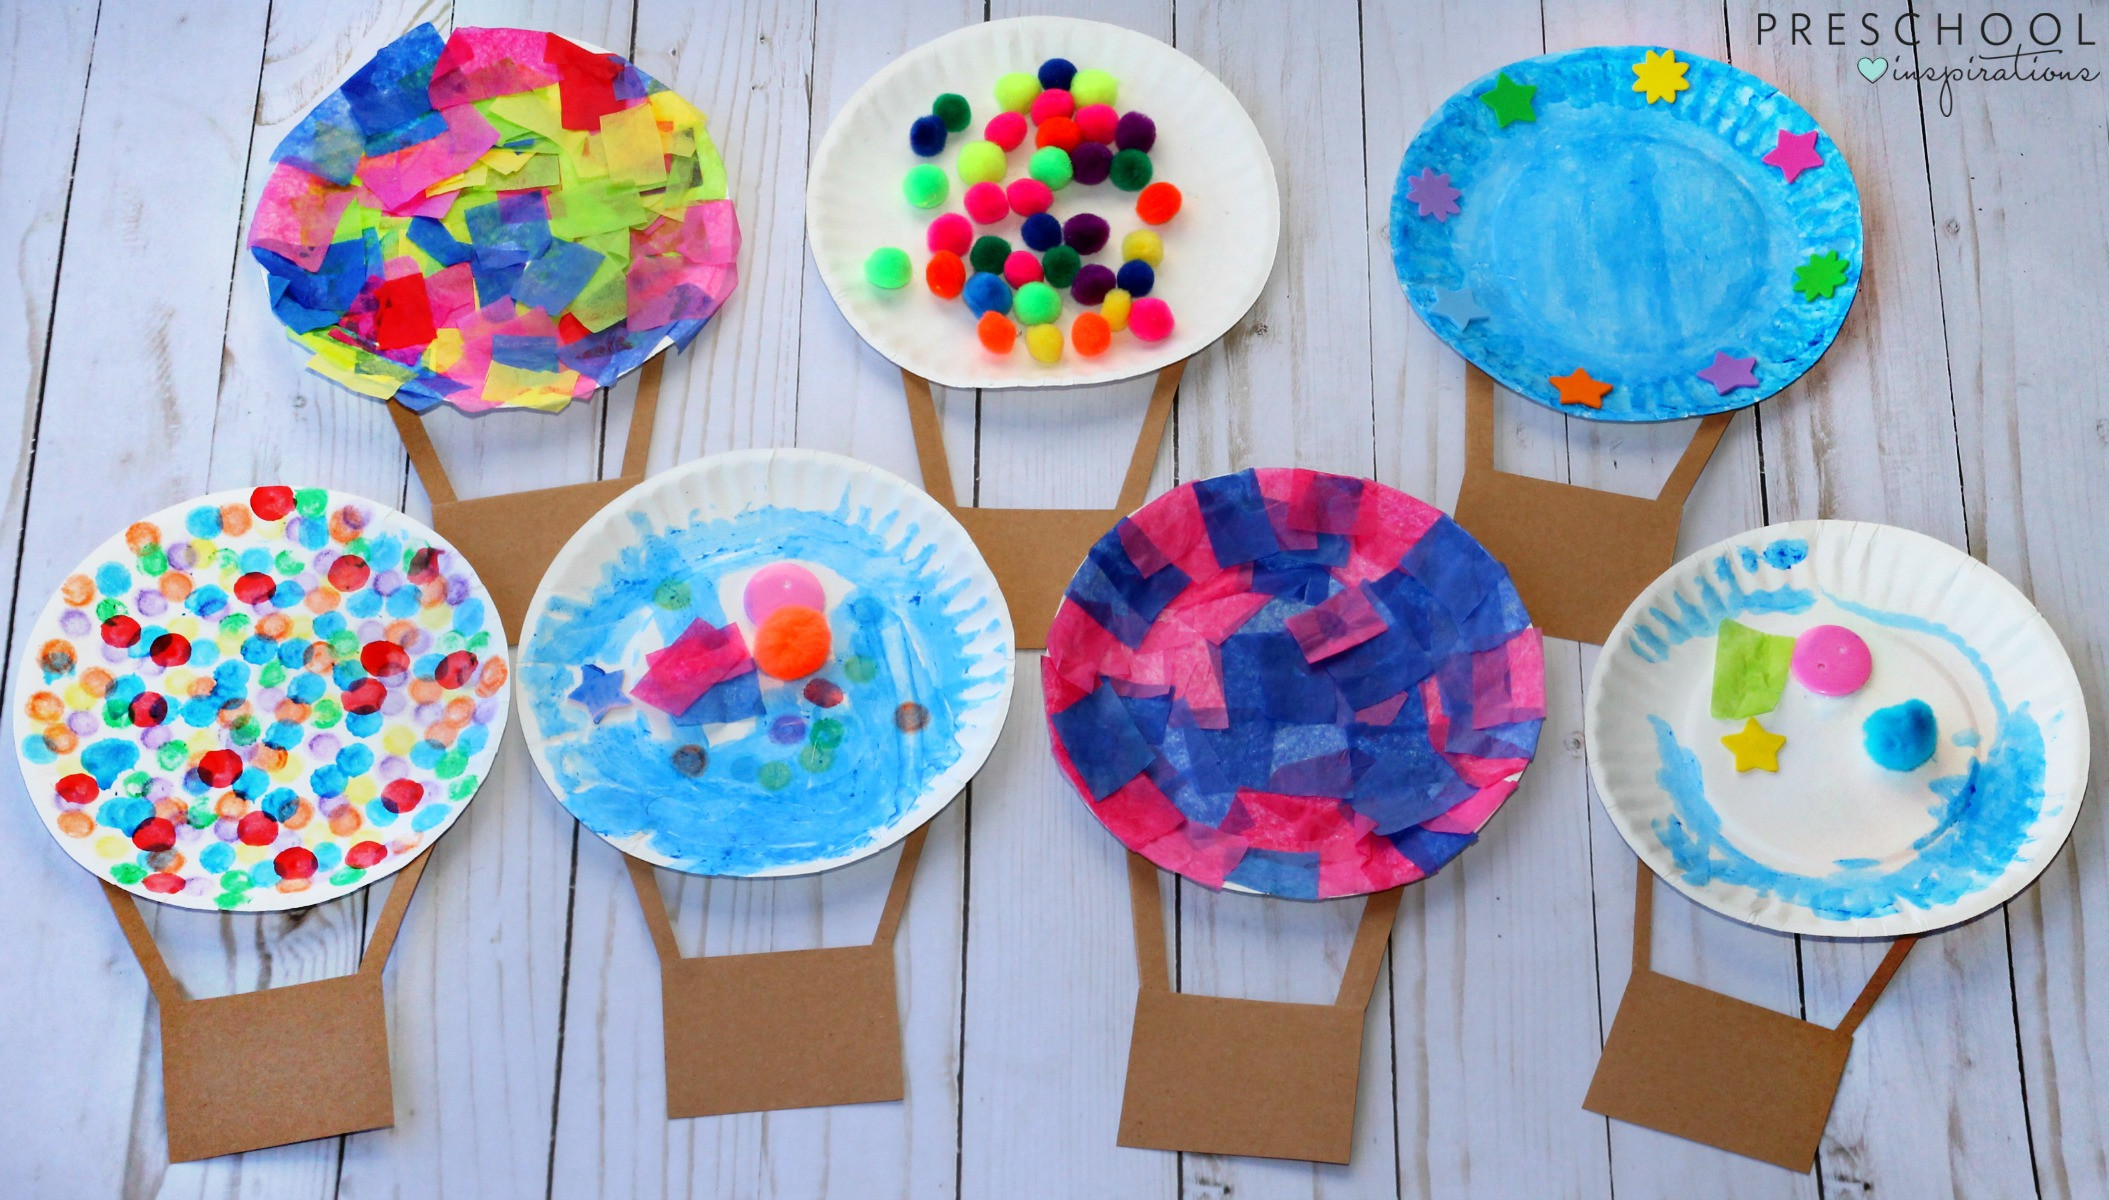 Best ideas about Arts And Crafts Projects For Kids . Save or Pin Hot Air Balloon Process Art Activity Preschool Inspirations Now.